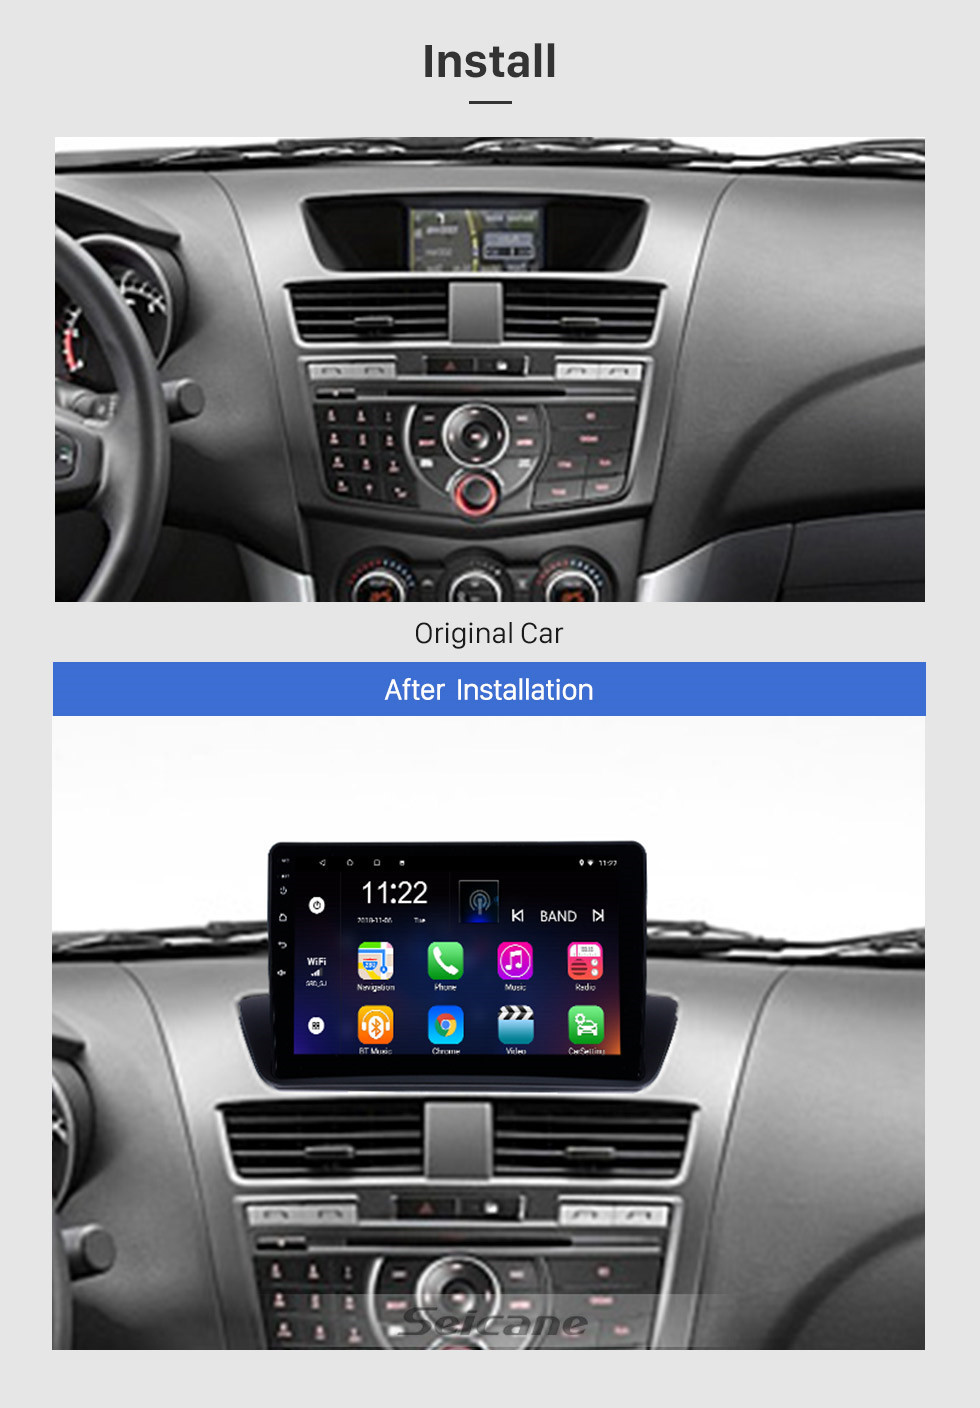 Seicane 9 inch OEM GPS Navigation Android 10.0 Stereo for 2012-2018 Mazda BT-50 Overseas version Touchscreen Radio Bluetooth Link WIFI AUX USB Steering Wheel Control support OBD 3G DVR